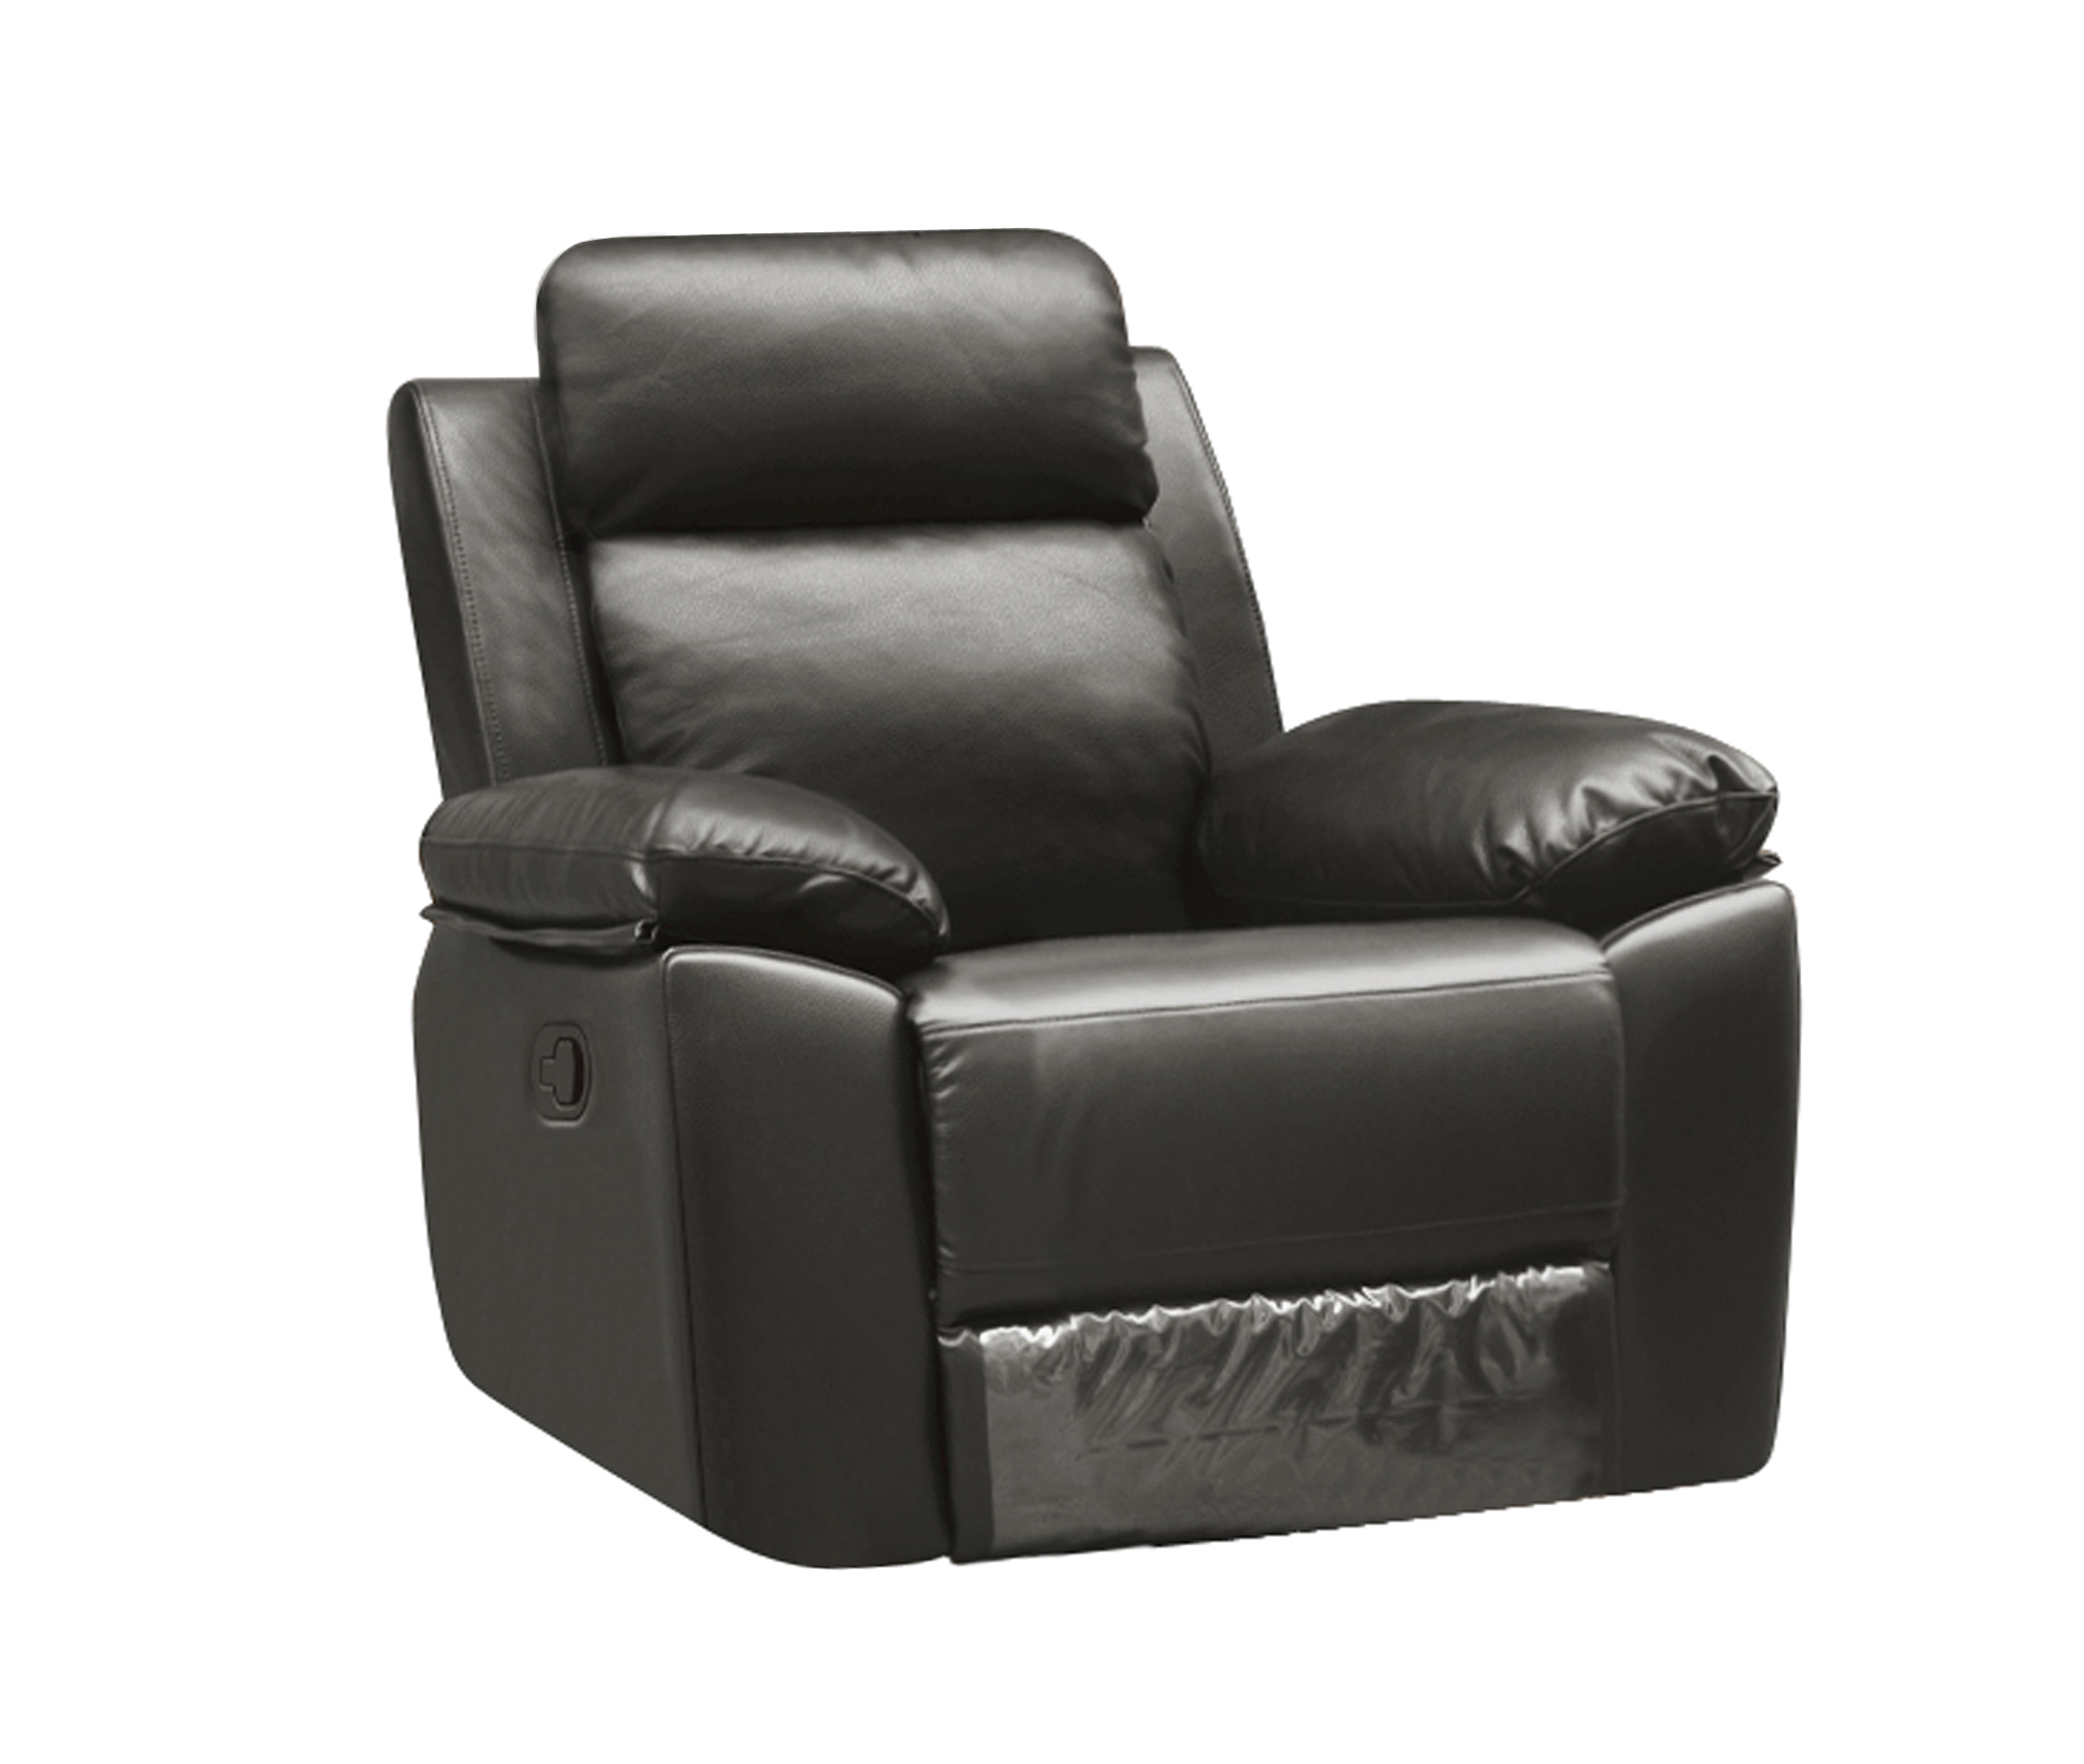 Leo Reclining Chair Leather Air Code G12 Grey Husky Furniture